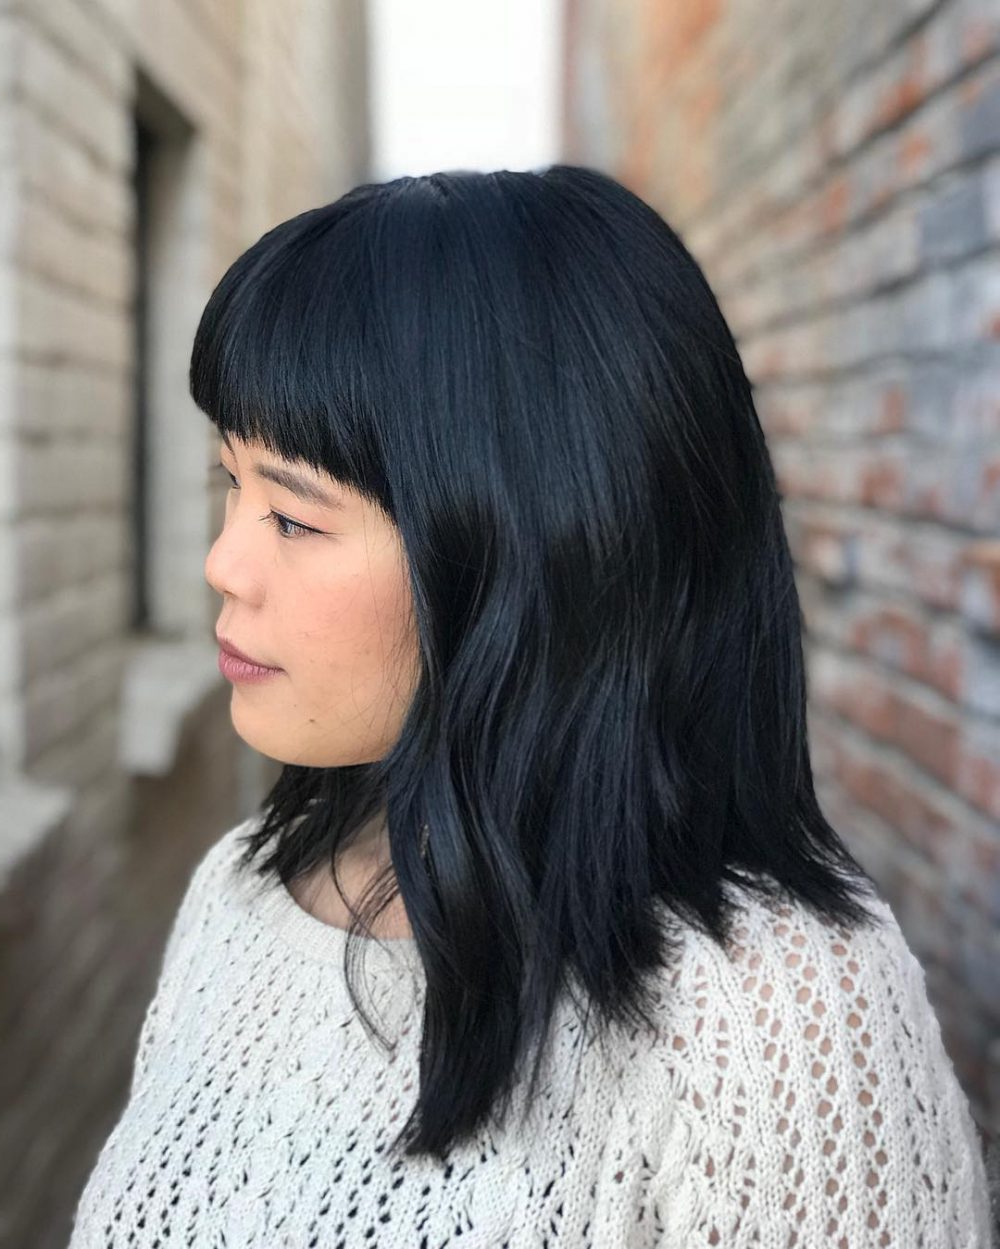 53 Popular Medium Length Hairstyles With Bangs In 2019 With Regard To 2018 Medium Hairstyles With Straight Bangs (View 16 of 20)